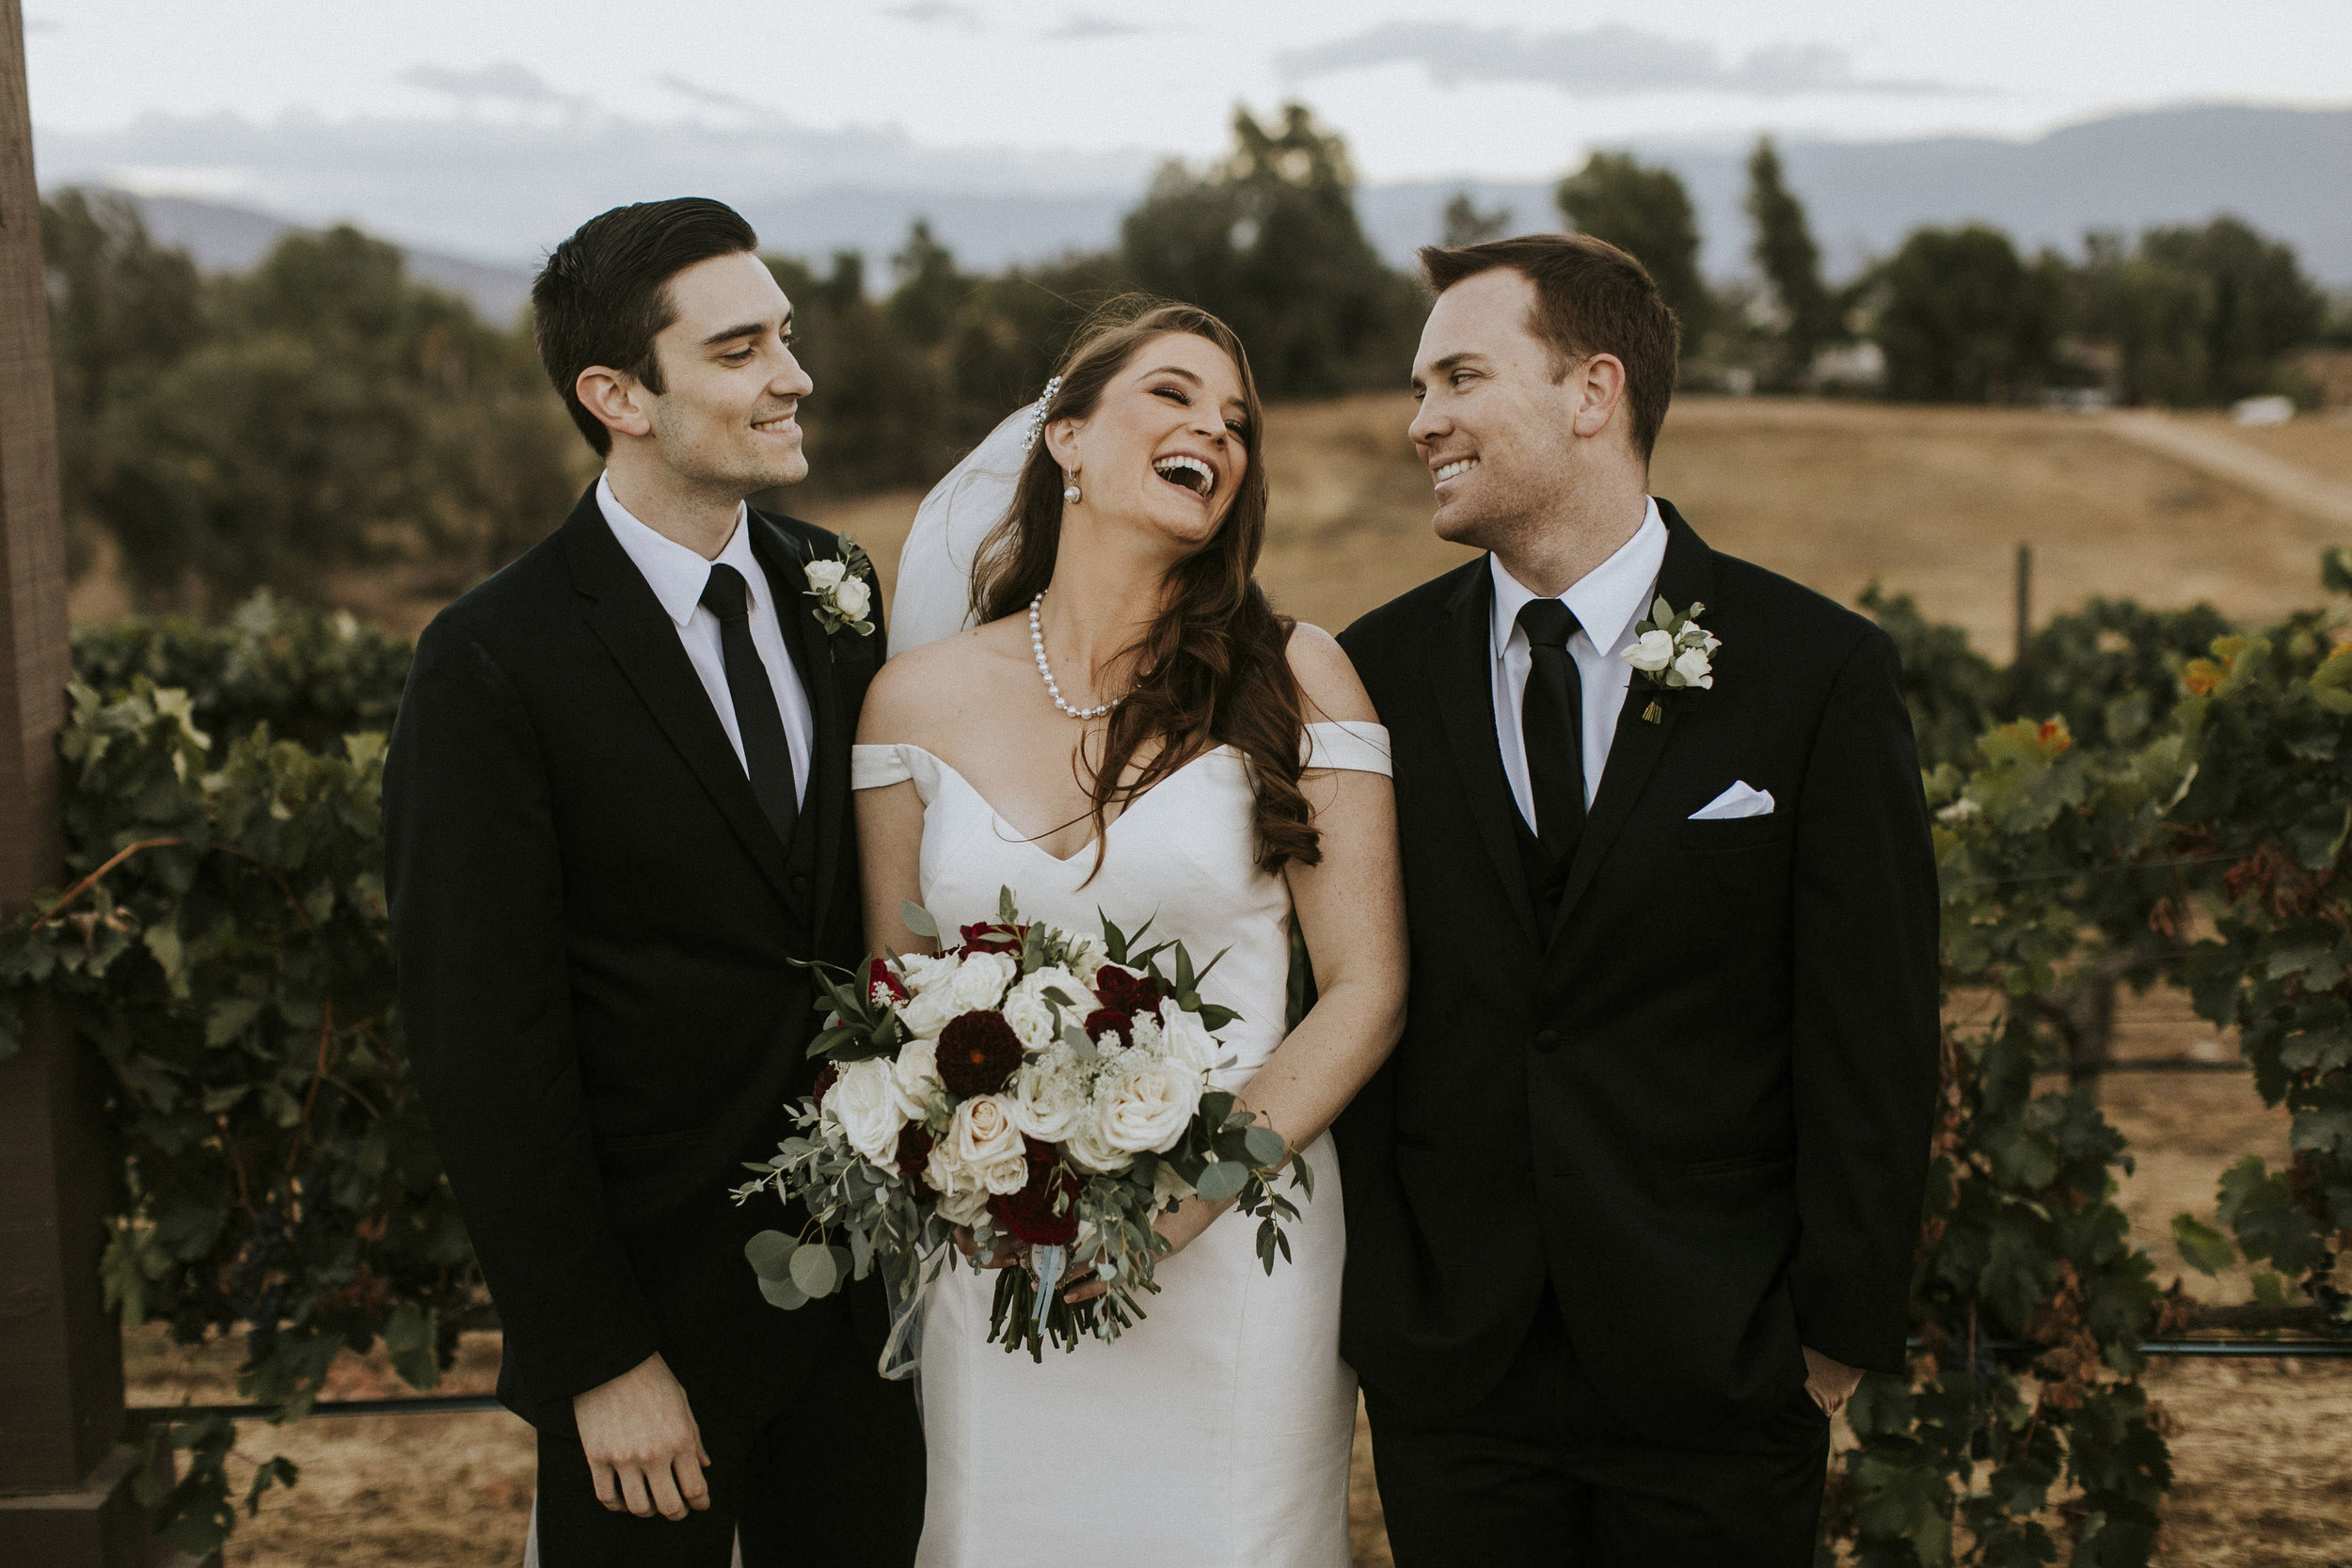 Domenica Beauty _ Hair and Makeup Artist _Wedding _ Temecula, CA _ Catherine and Darryl _ 32.JPG